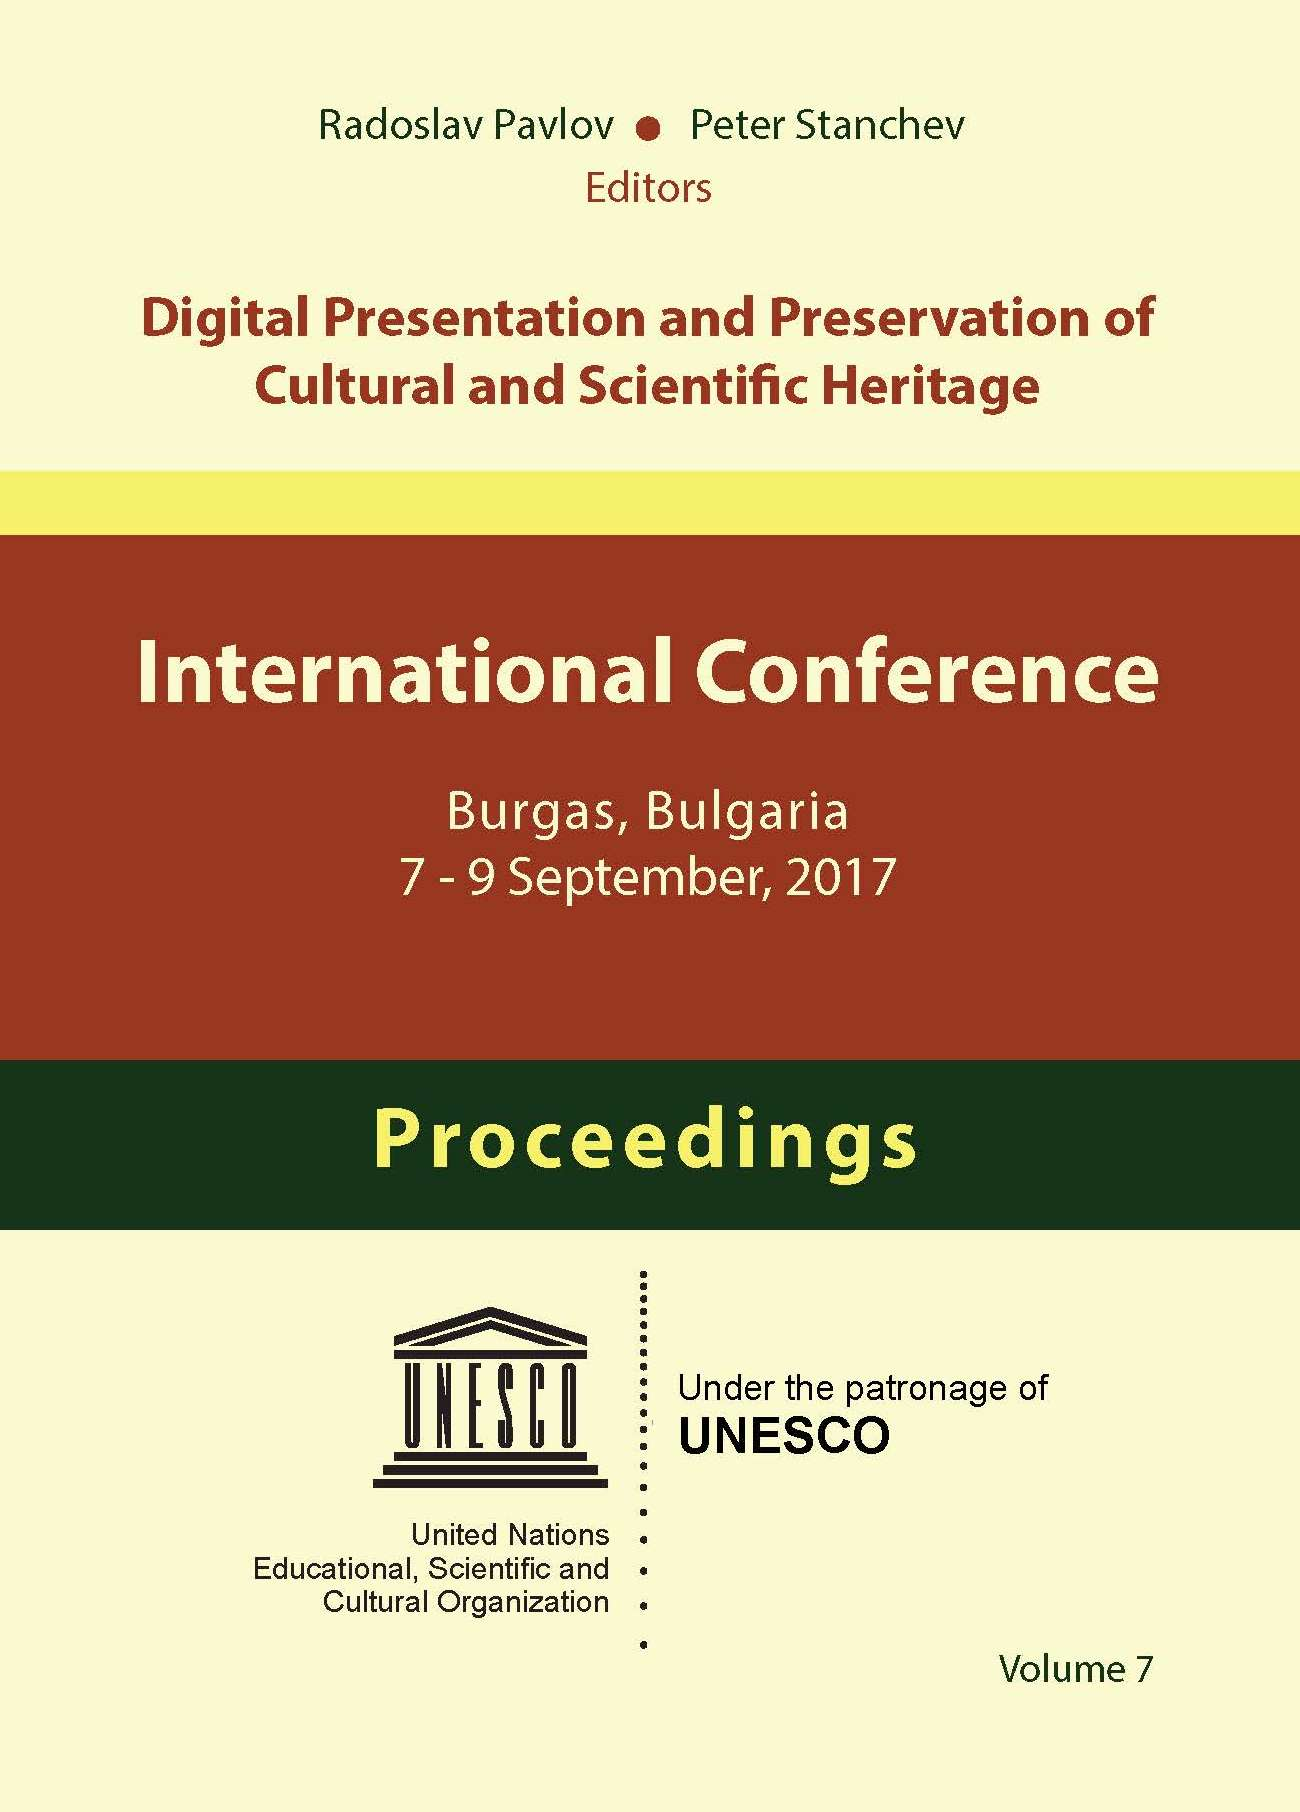 Digital Presentation and Preservation of Cultural and Scientific Heritage